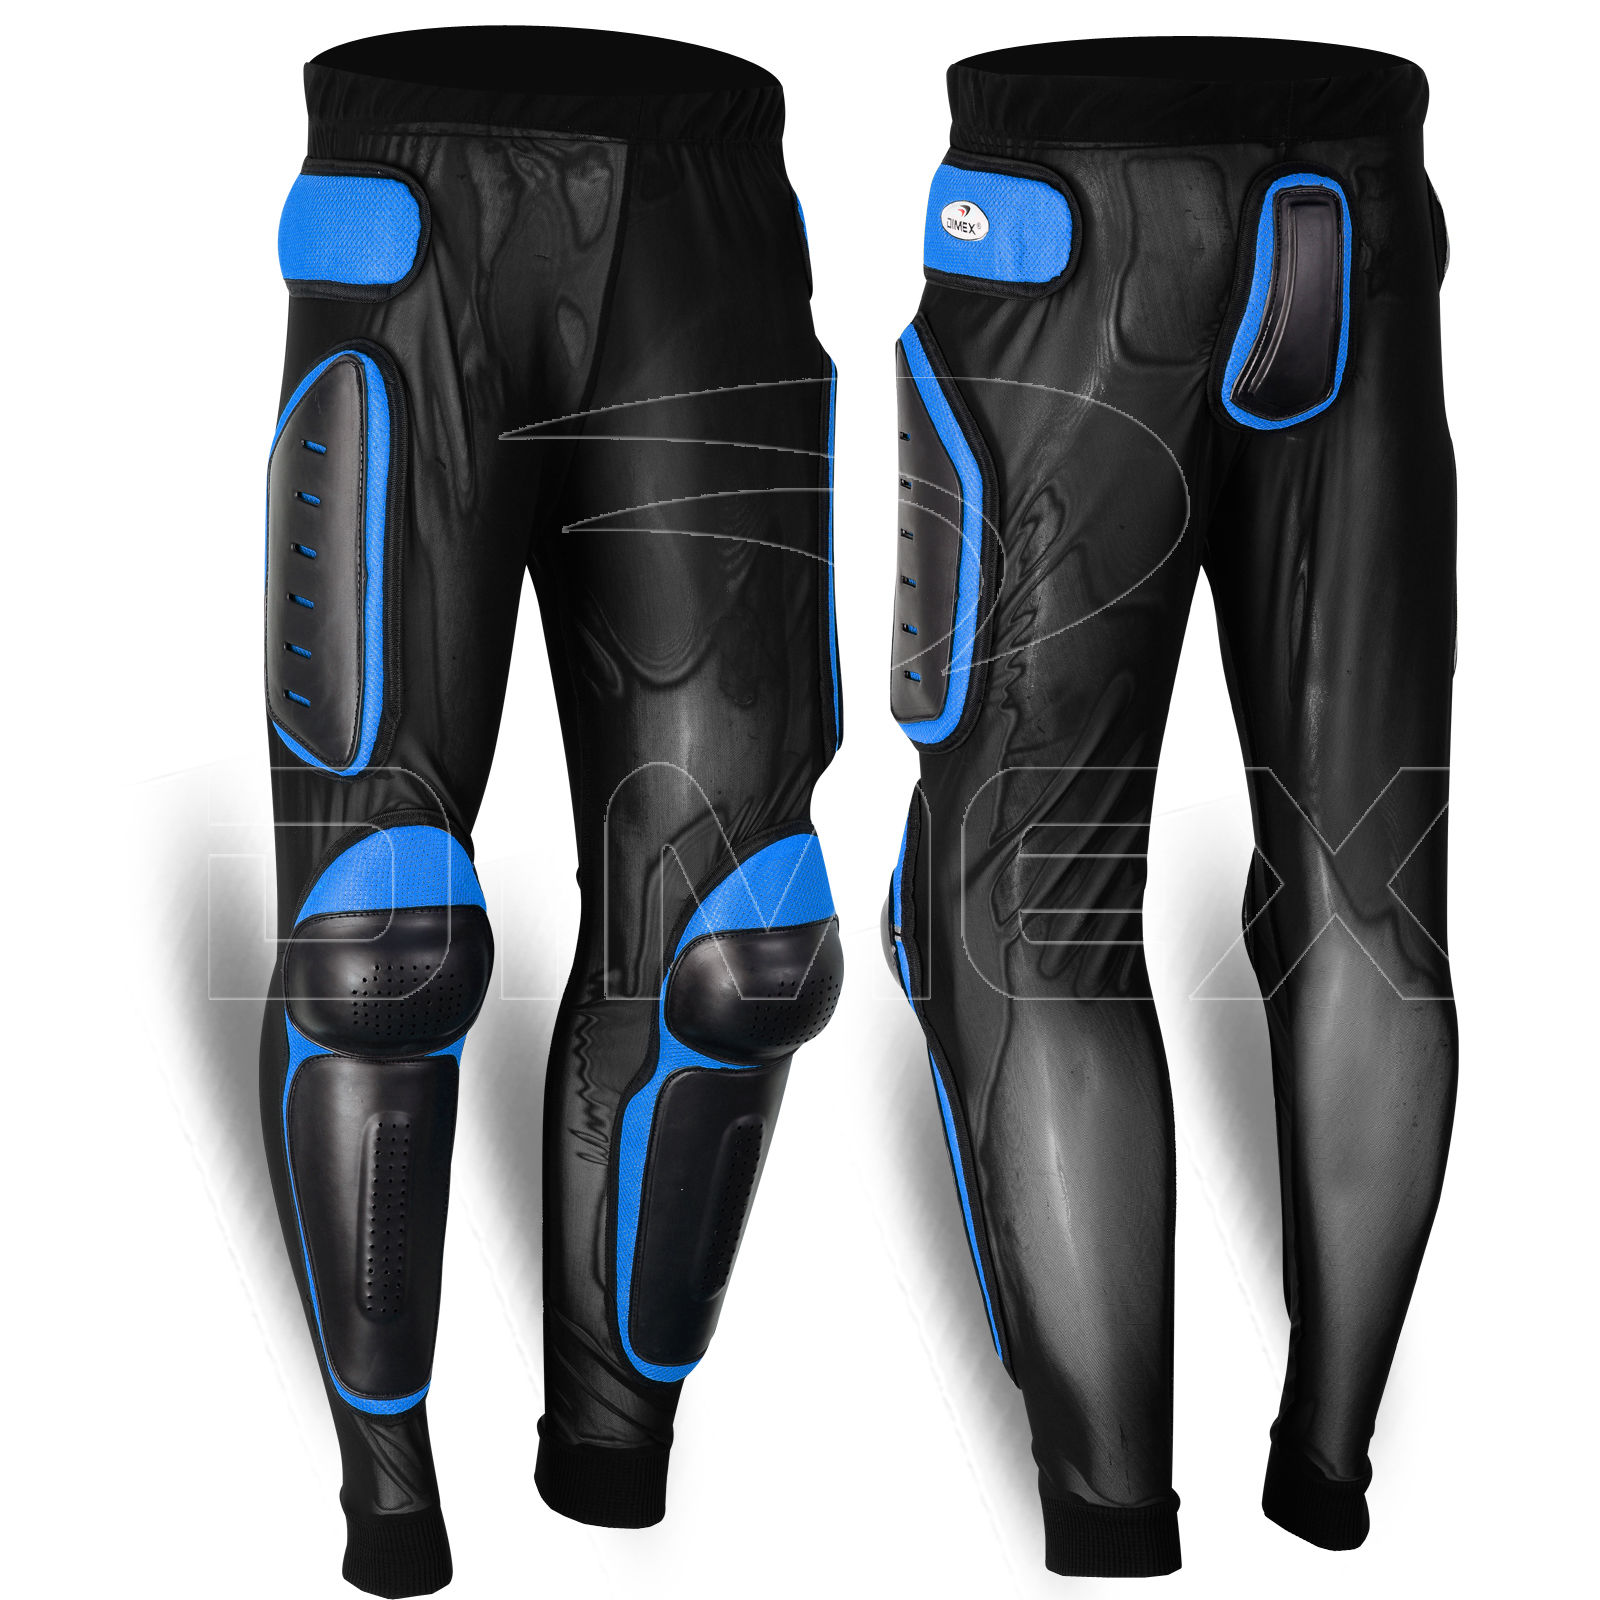 Best Motorcycle Armor >> Body Armour Motorcycle Motorbike Trouser Snowbaords Skating Pants MX Protection | eBay